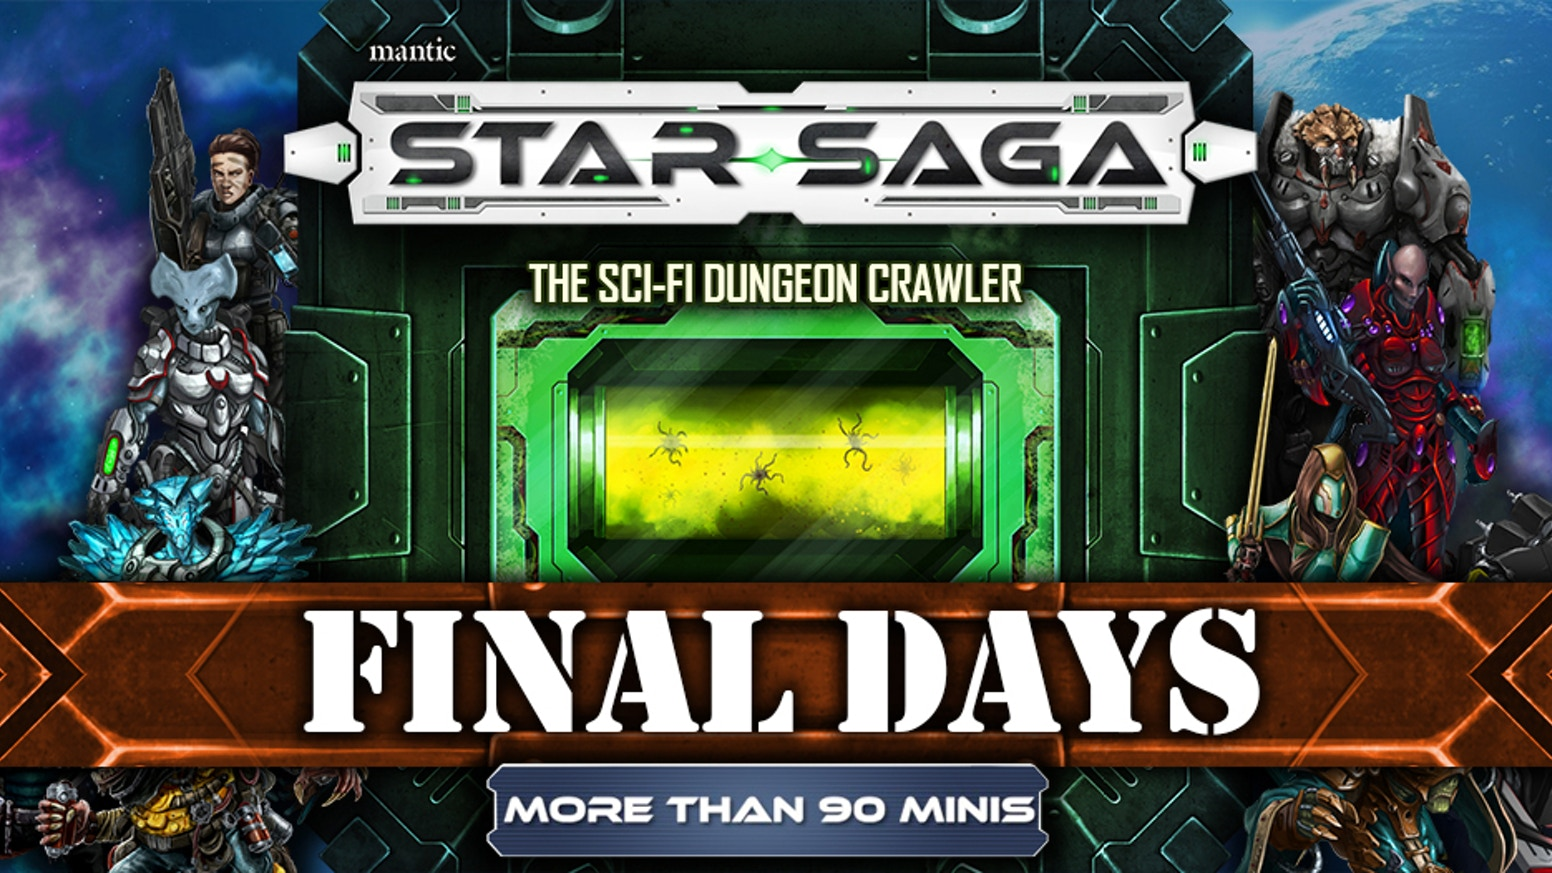 Star Saga is the tactical, story-driven science fiction dungeon crawler for 1-5 players.